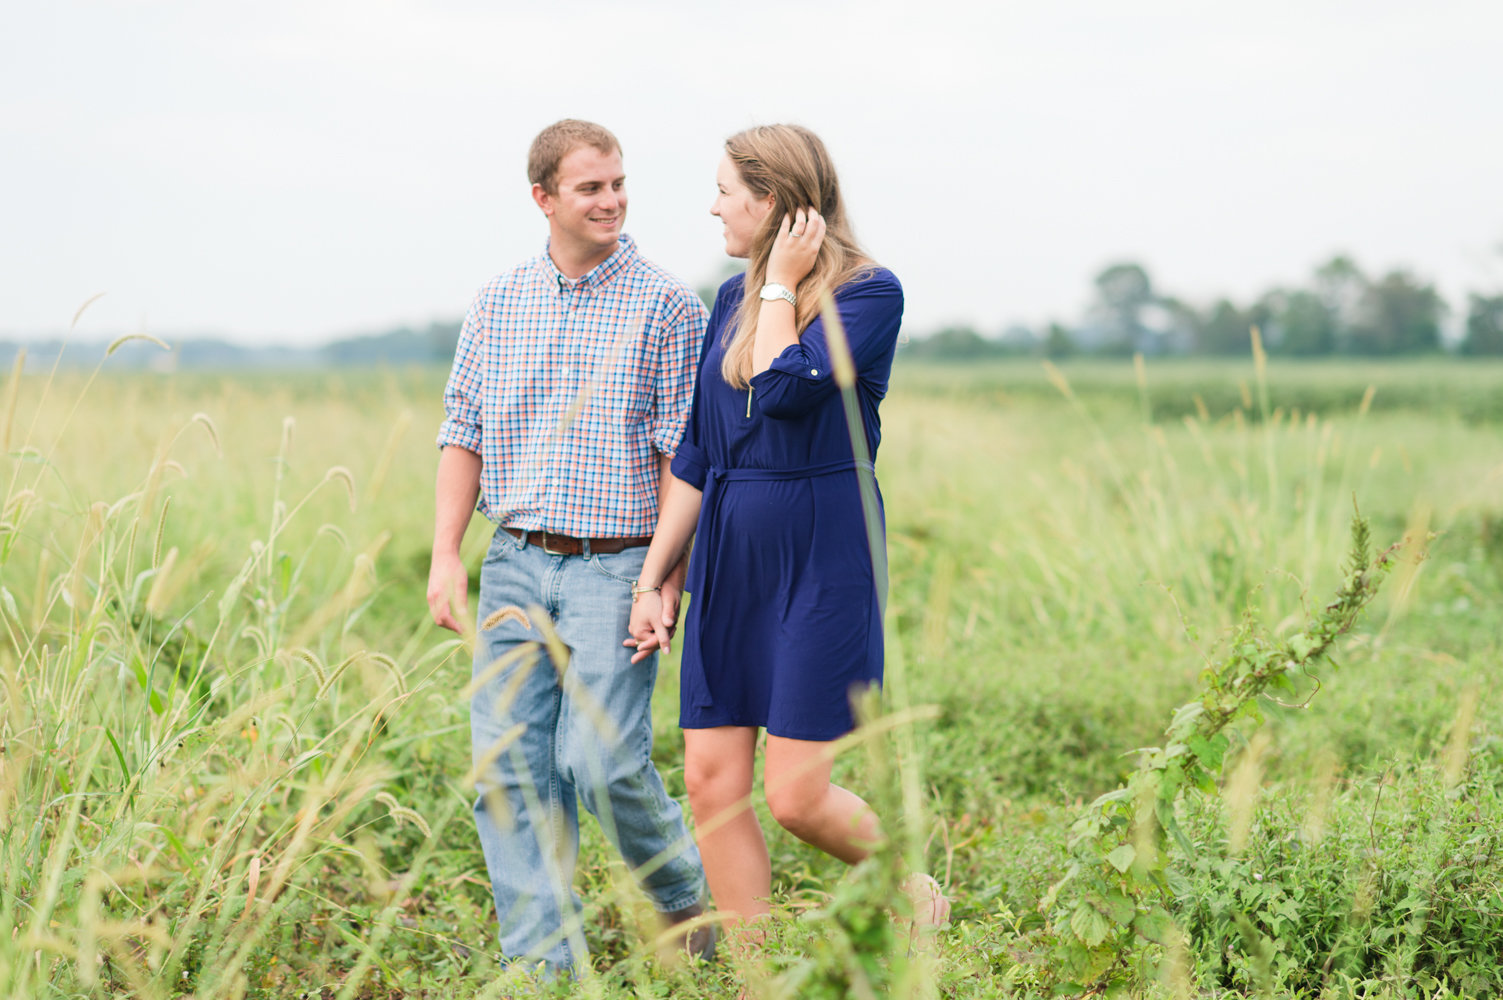 engagement-portraits-christina-forbes-photography-58